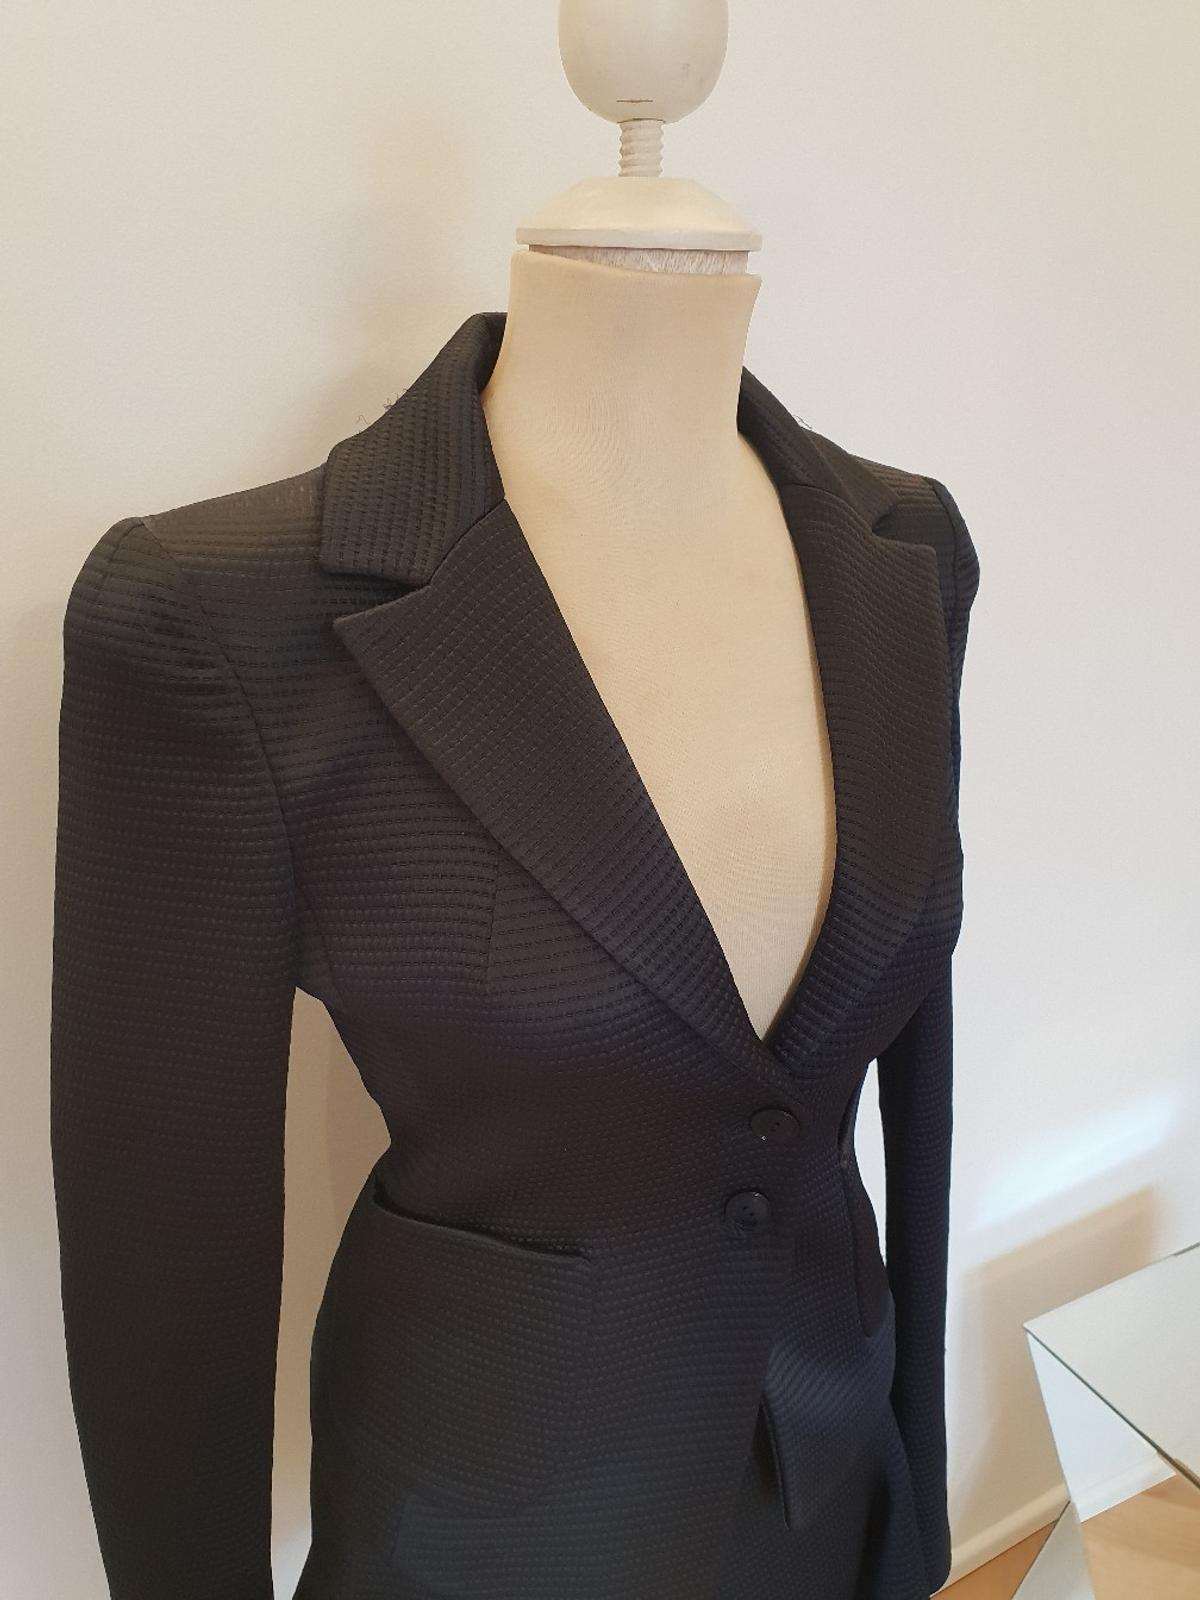 outlet store cffb9 21b5a Tailleur Completo Patrizia Pepe blu navy 42 in 20121 Milano ...